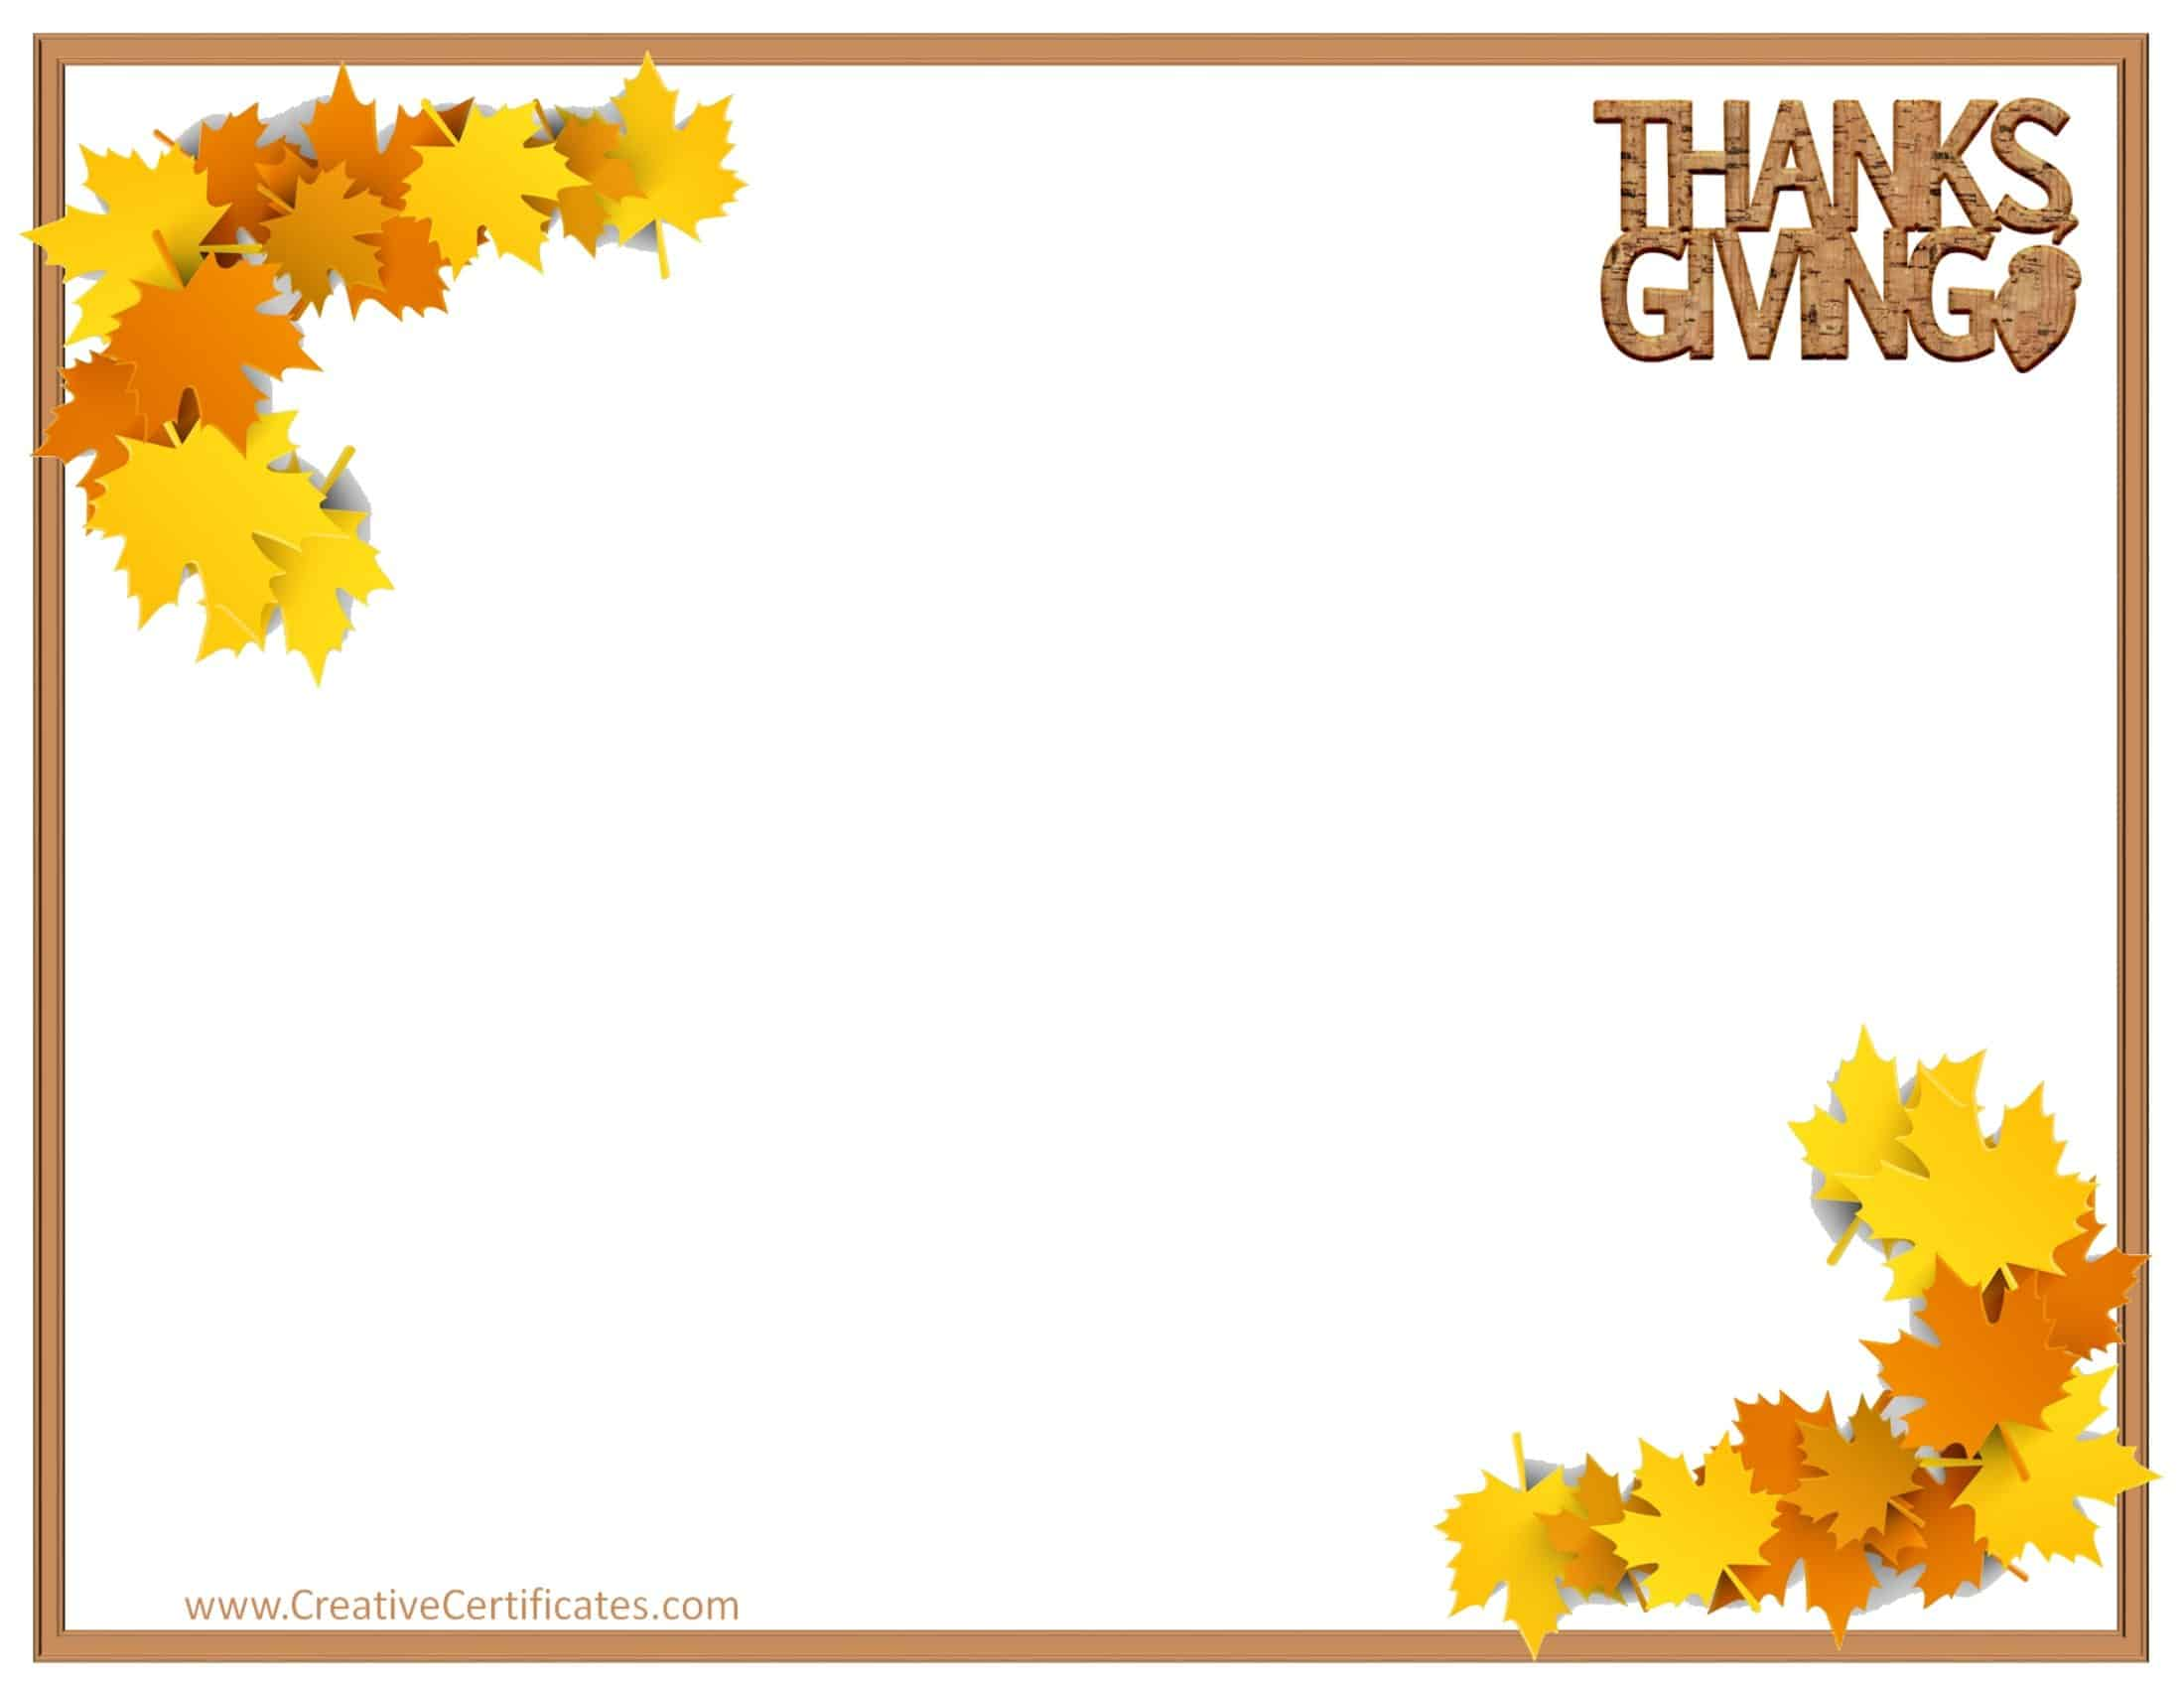 Free thanksgiving border templates customizable printable for Free thanksgiving templates for word